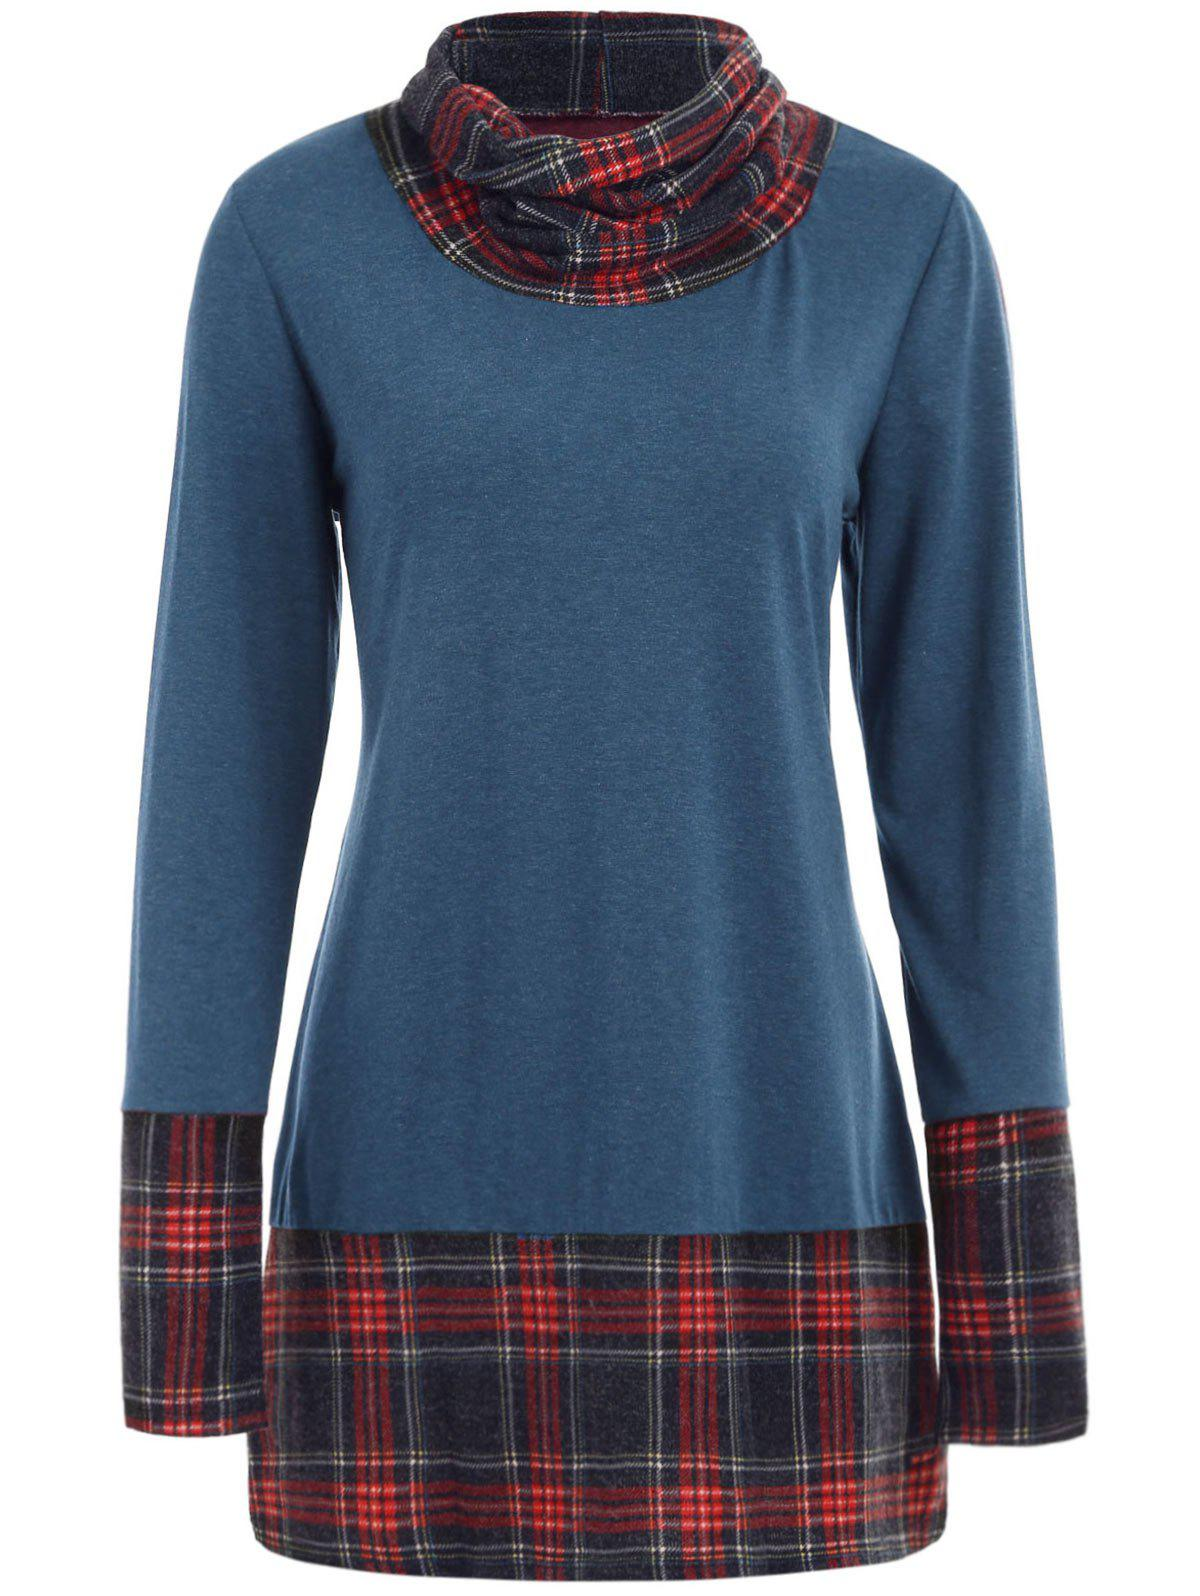 Buy Cowl Neck Plaid Detail Plus Size Sweatshirt